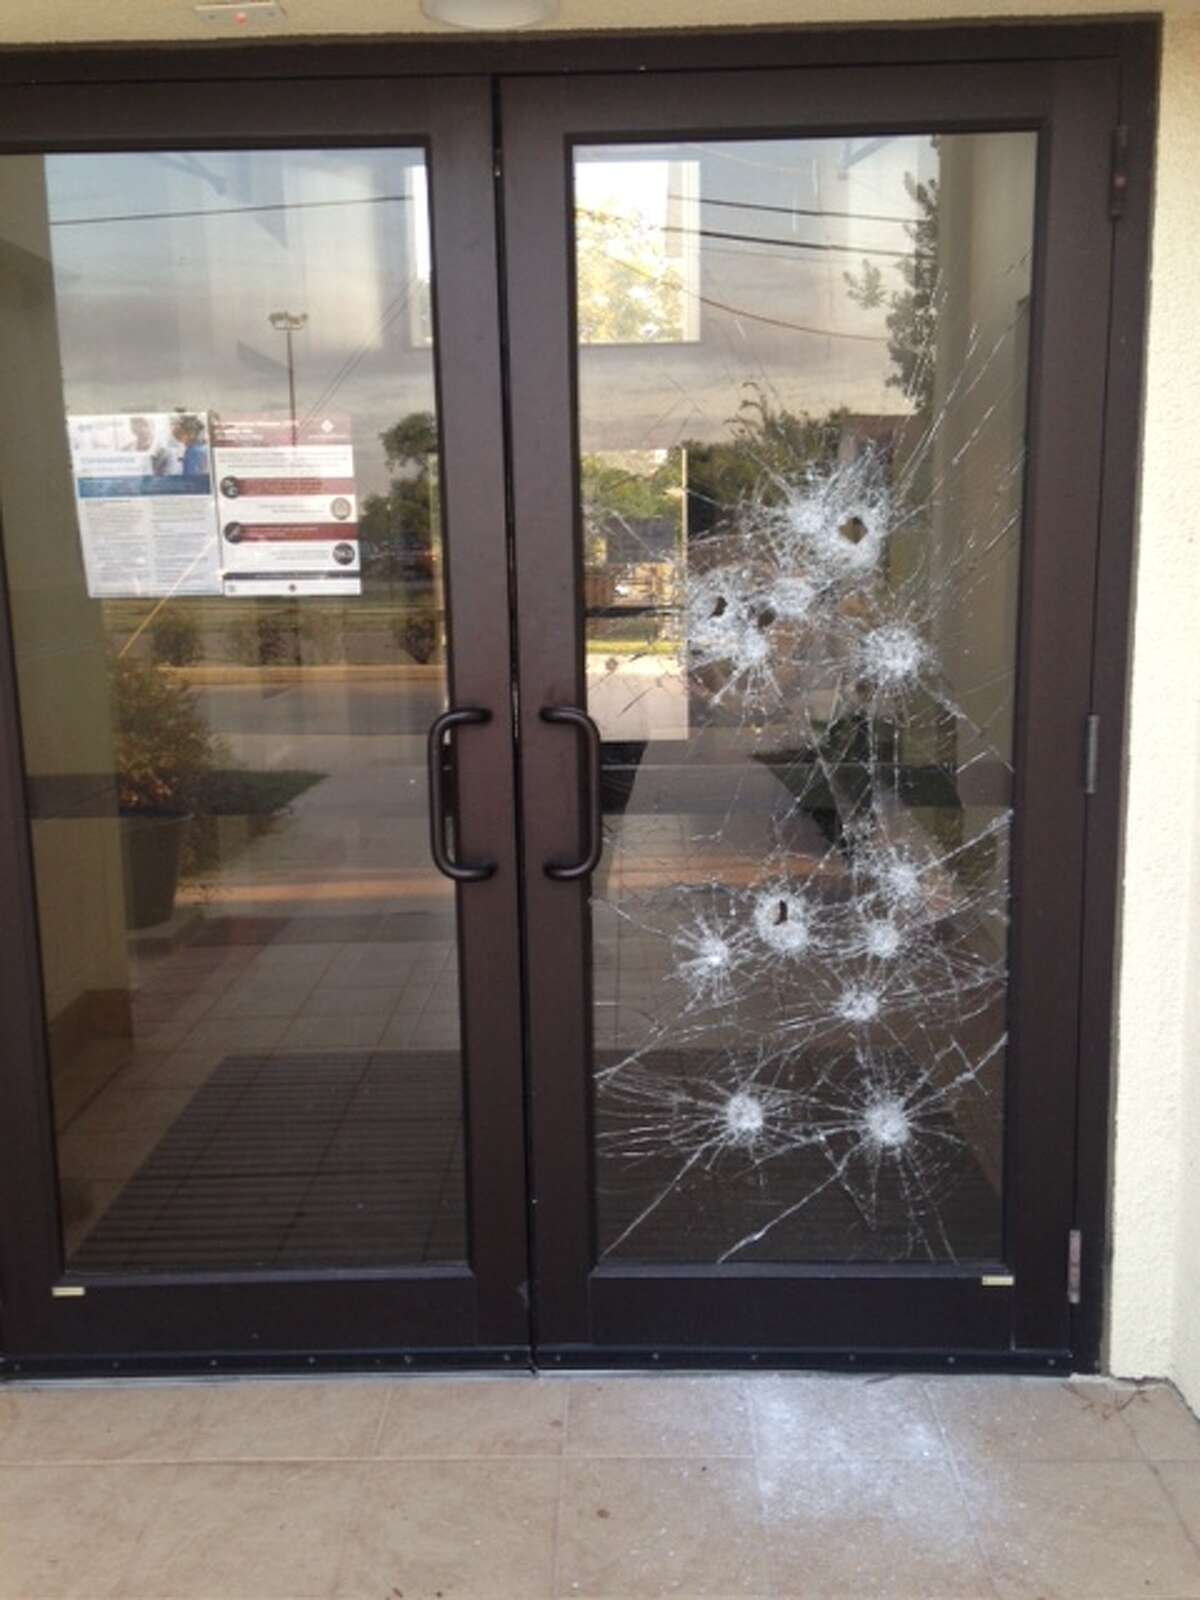 Assumption Seminary near Woodlawn Lake was vandalized Thursday night, according to the Archdiocese of San Antonio.